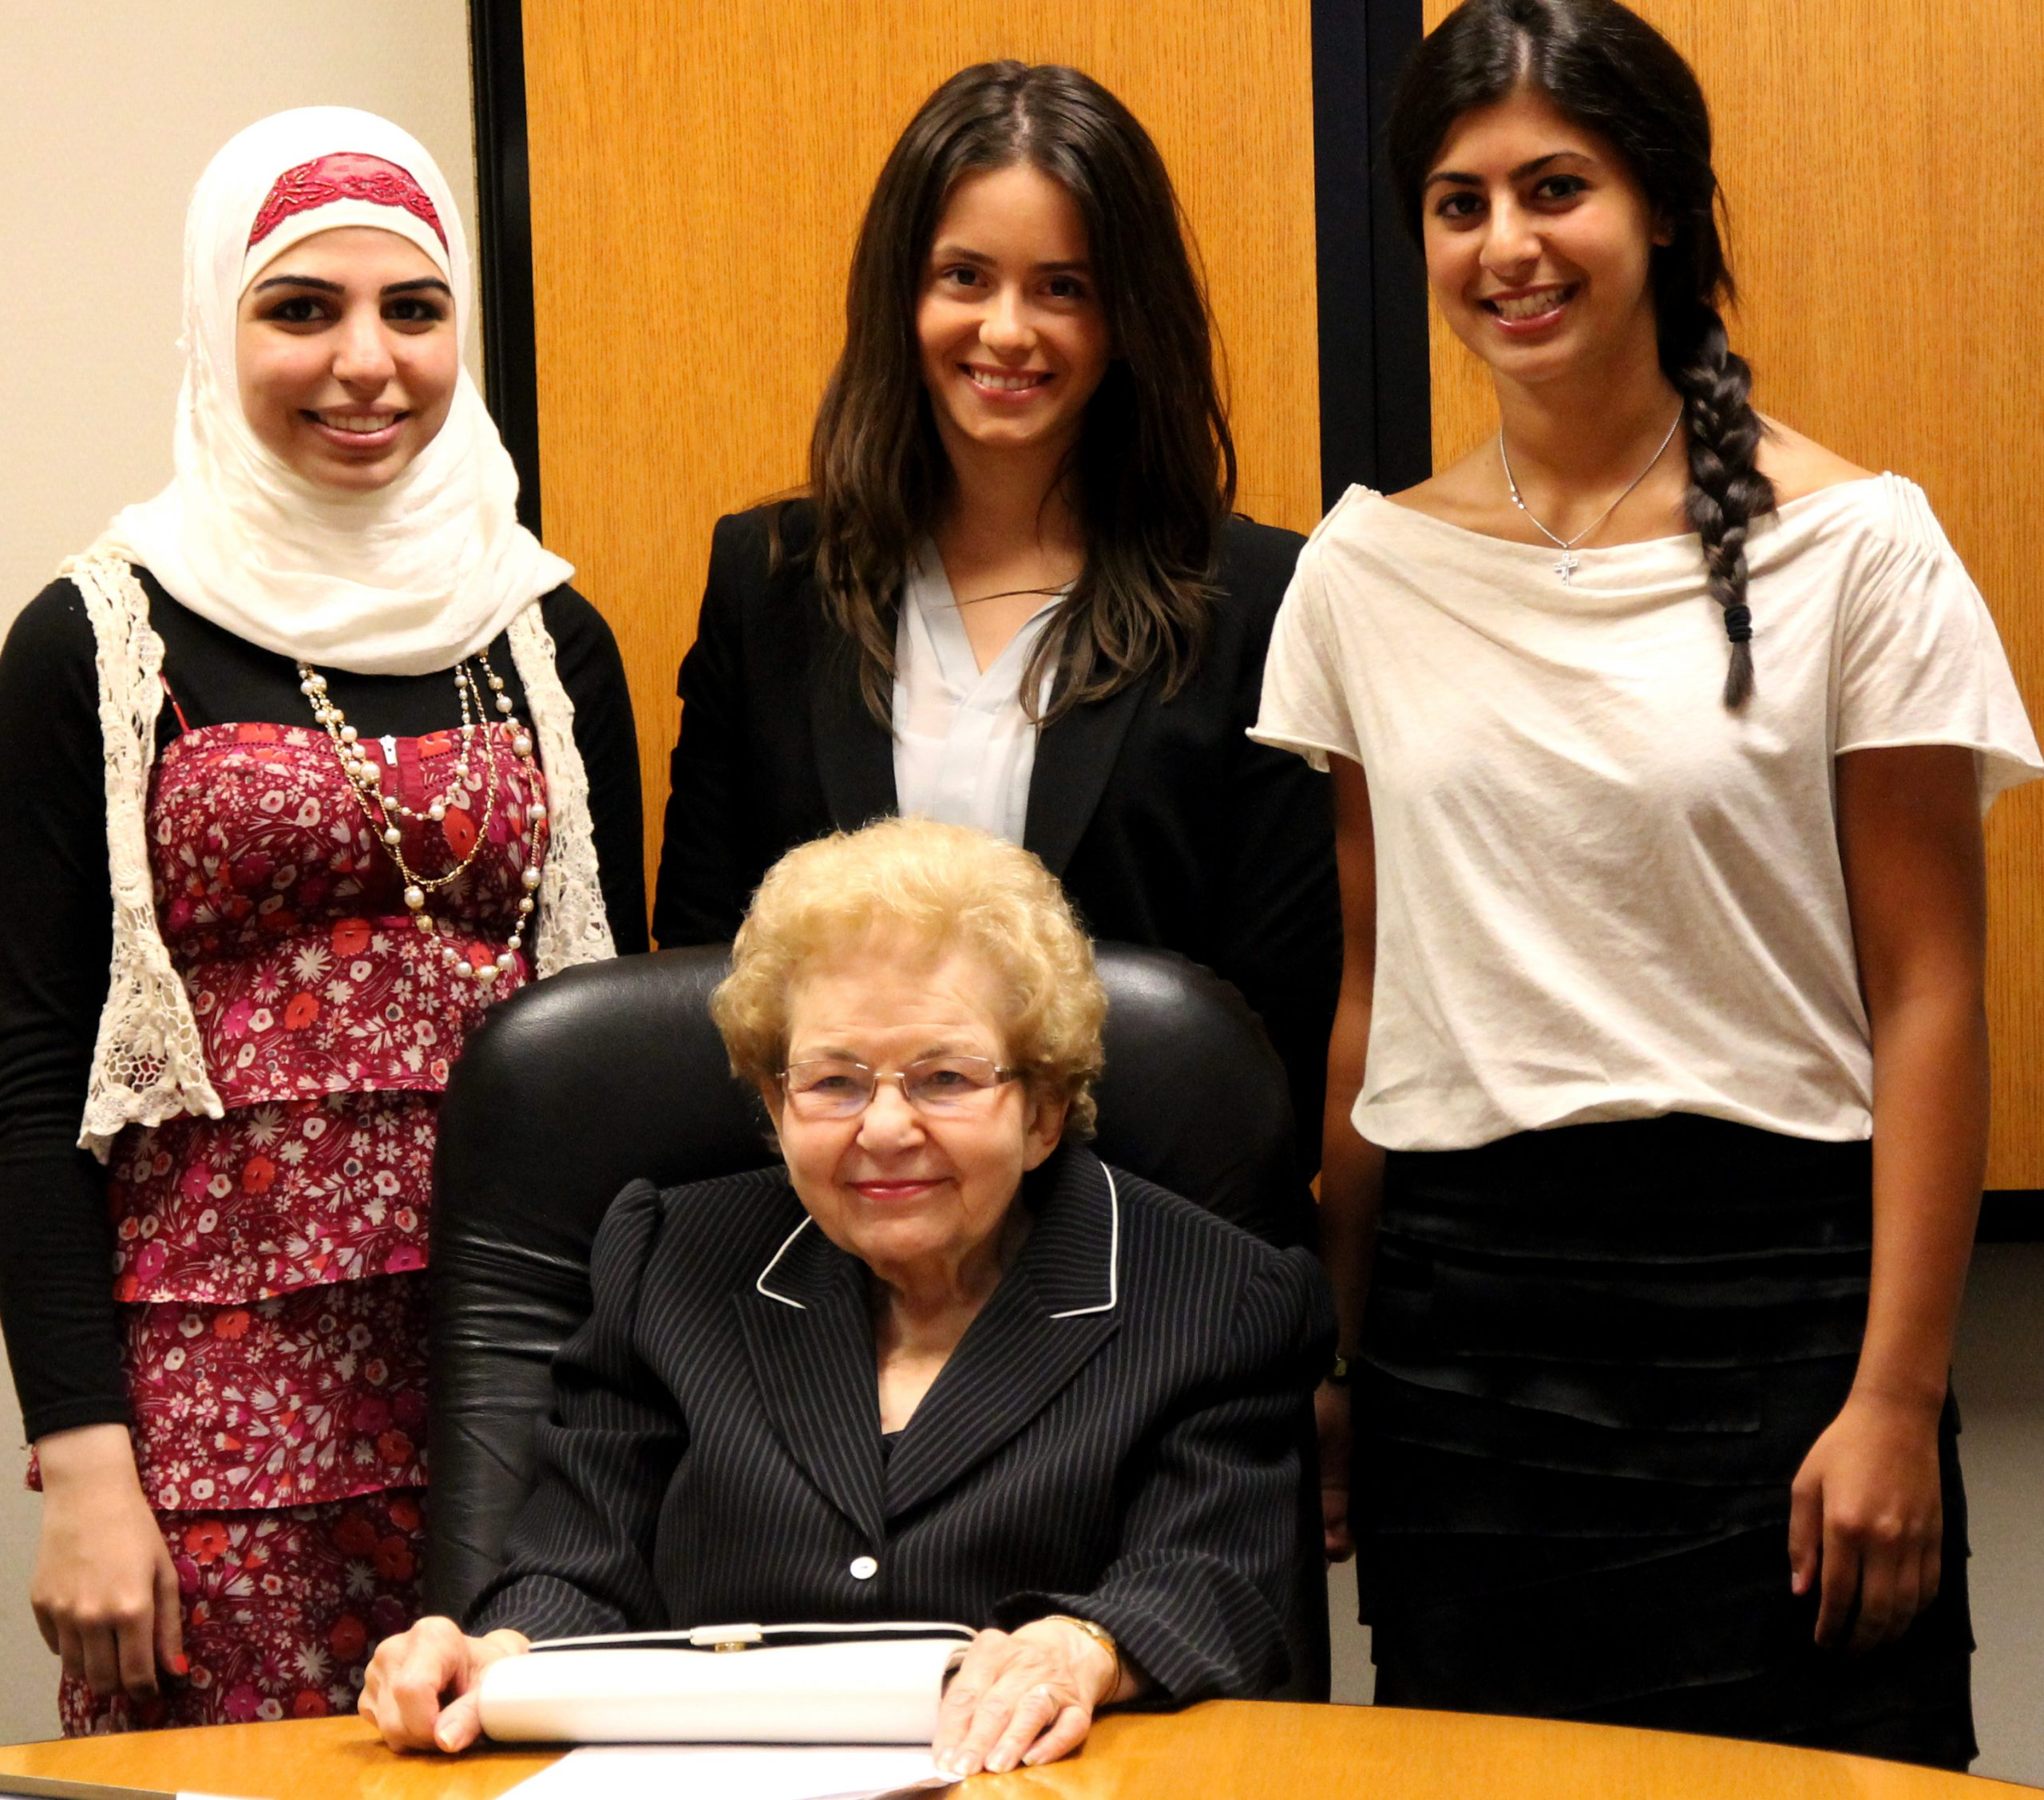 Aauw Welcome To The Dearborn Branch Of Aauw! | Dearborn Intended For U Of M Dearborn Academic Calander